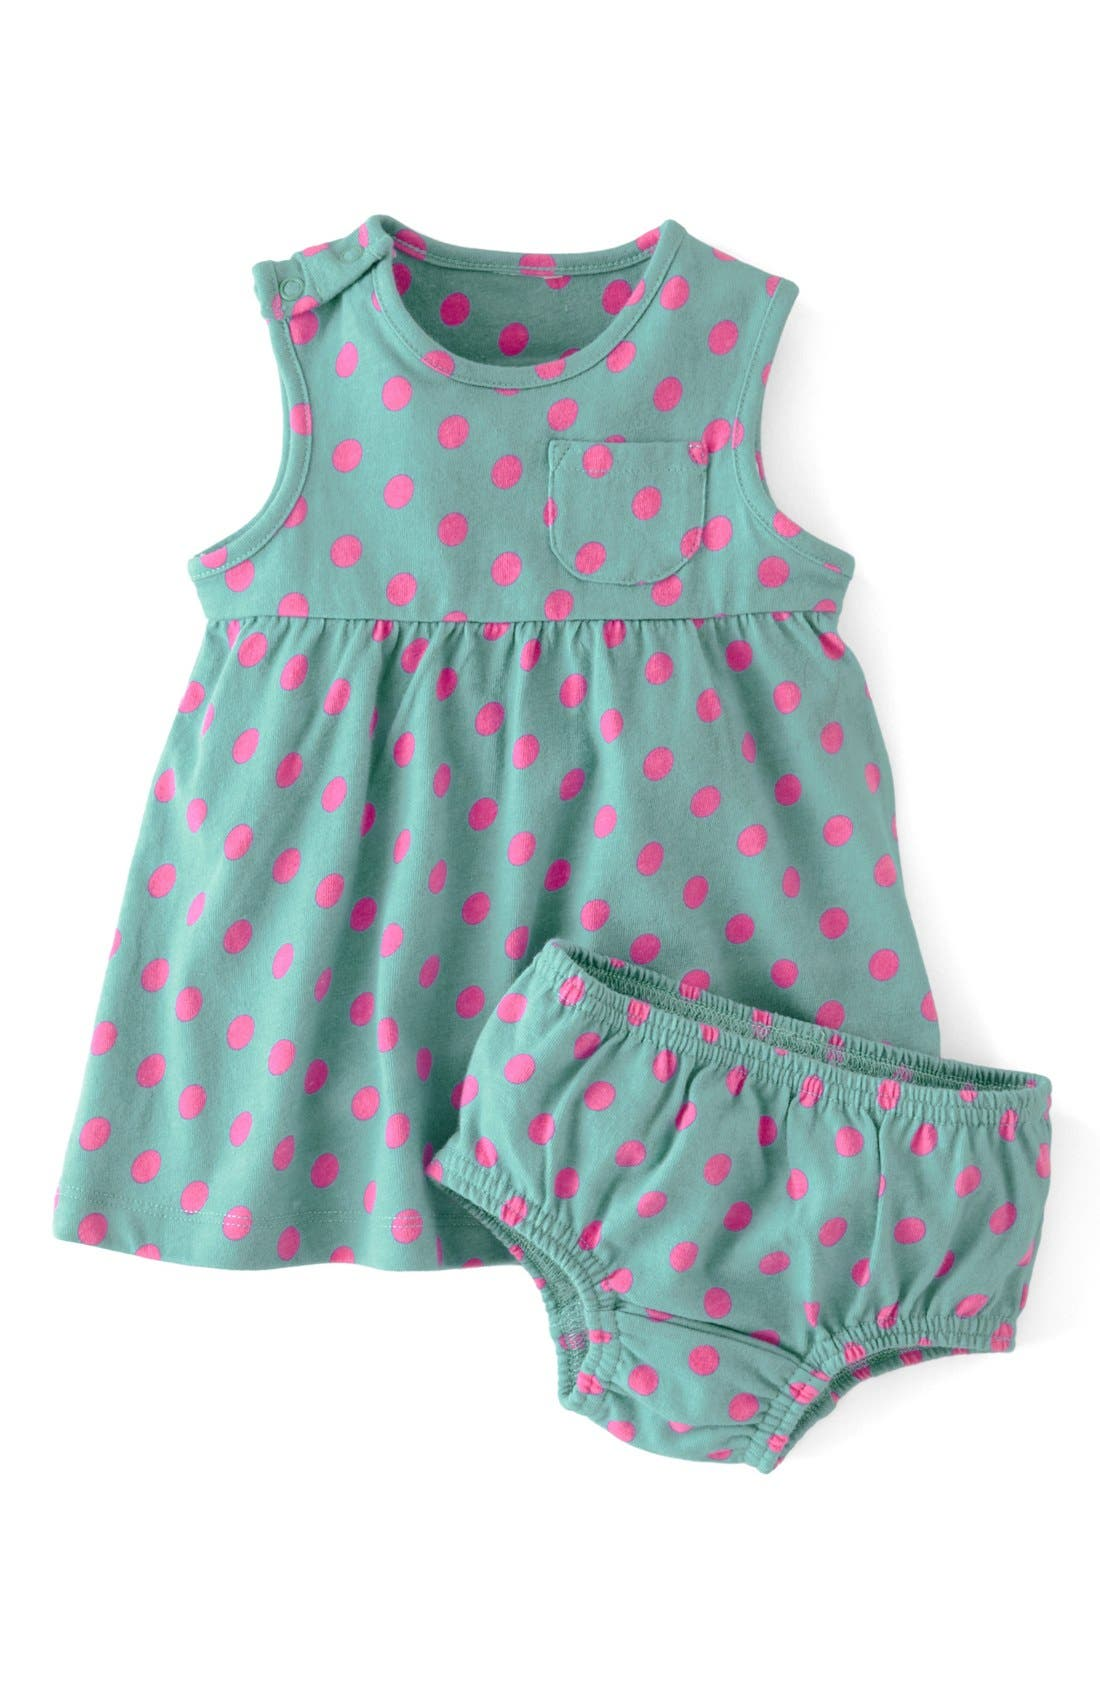 Main Image - Mini Boden Essential Spotty Jersey Dress (Baby Girls)